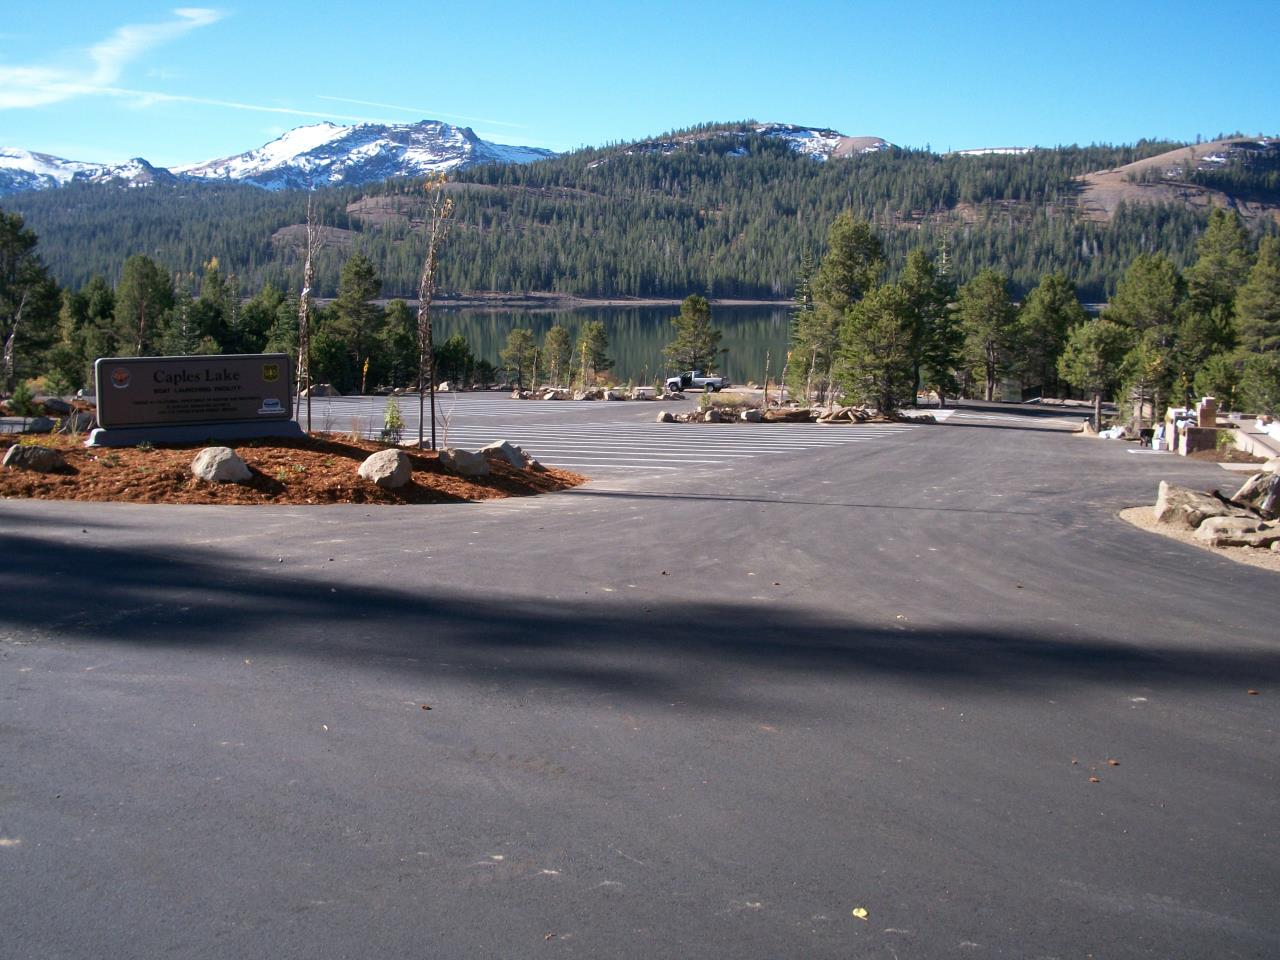 Caples Lake Boat Launch